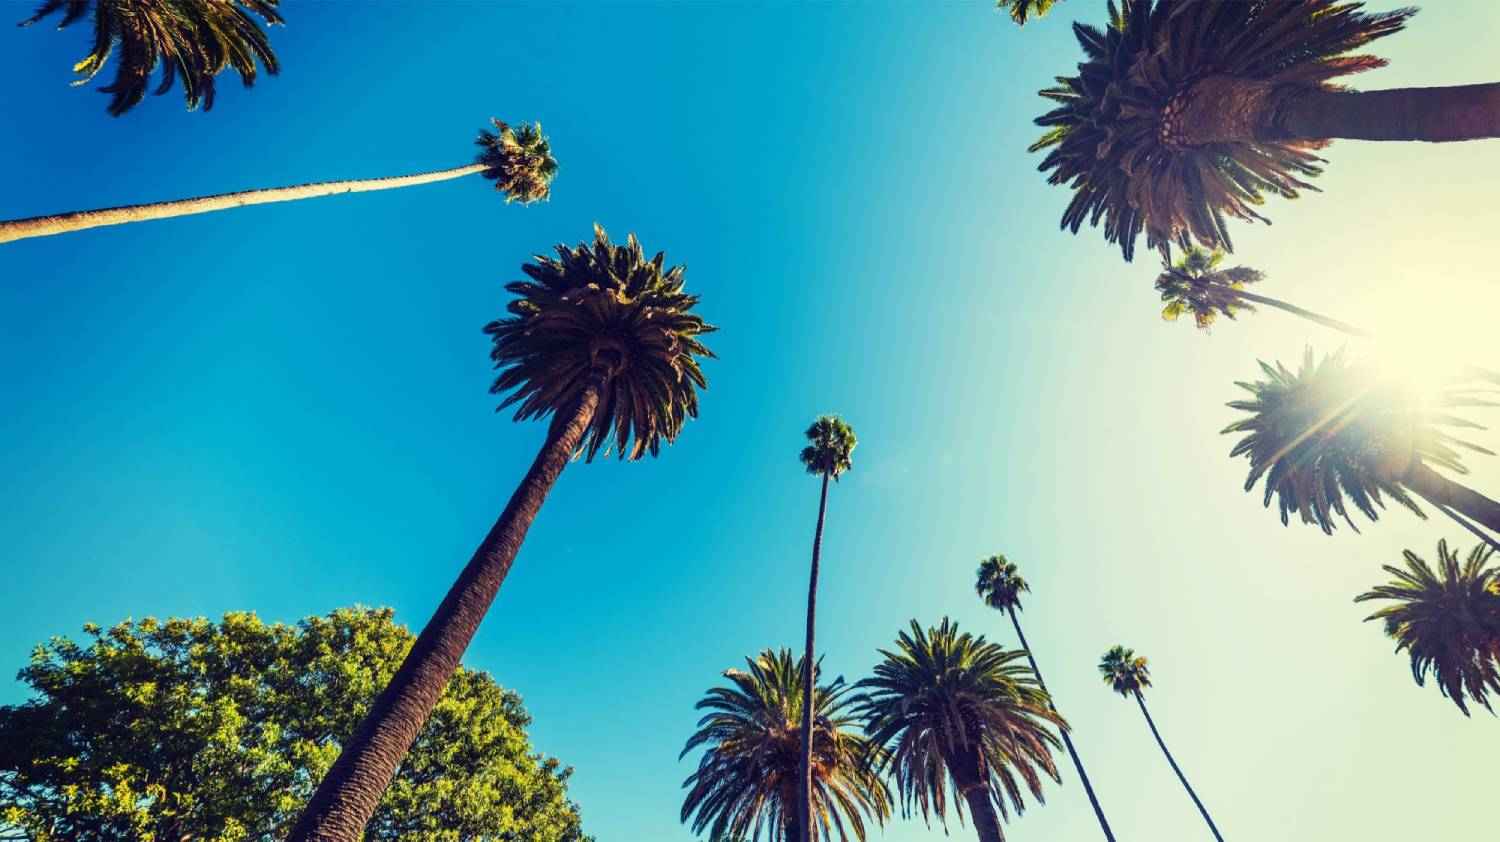 Beverly Hills - Things To Do In Los Angeles